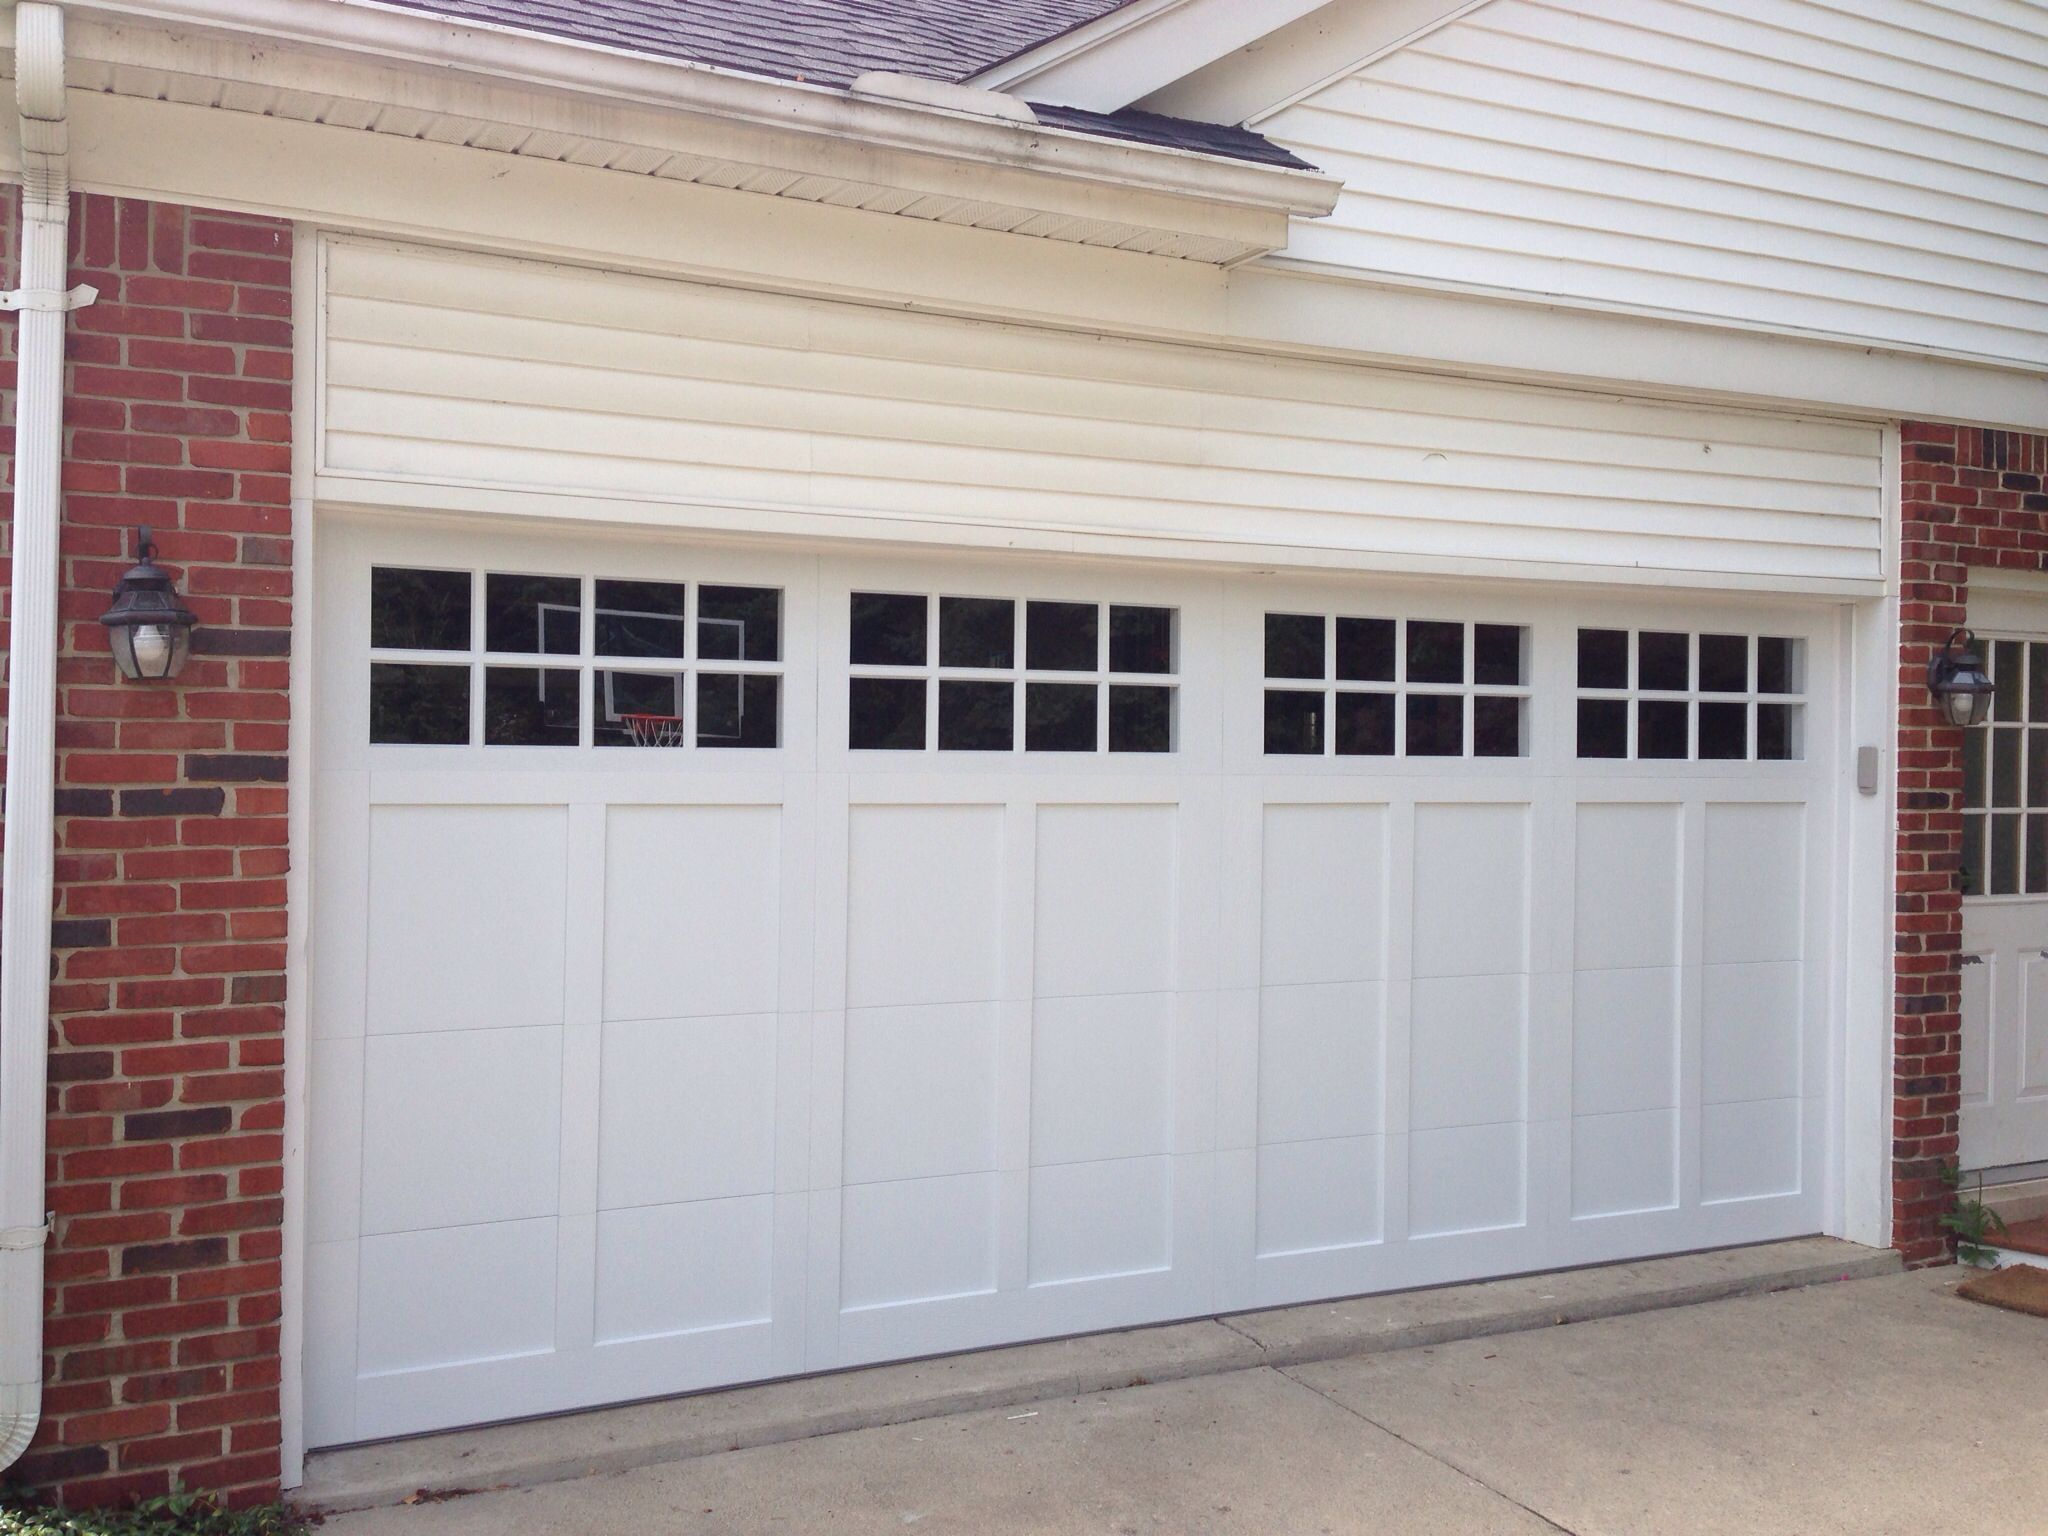 16 39 x 7 39 c h i garage door model 5330 color white for Premier garage doors